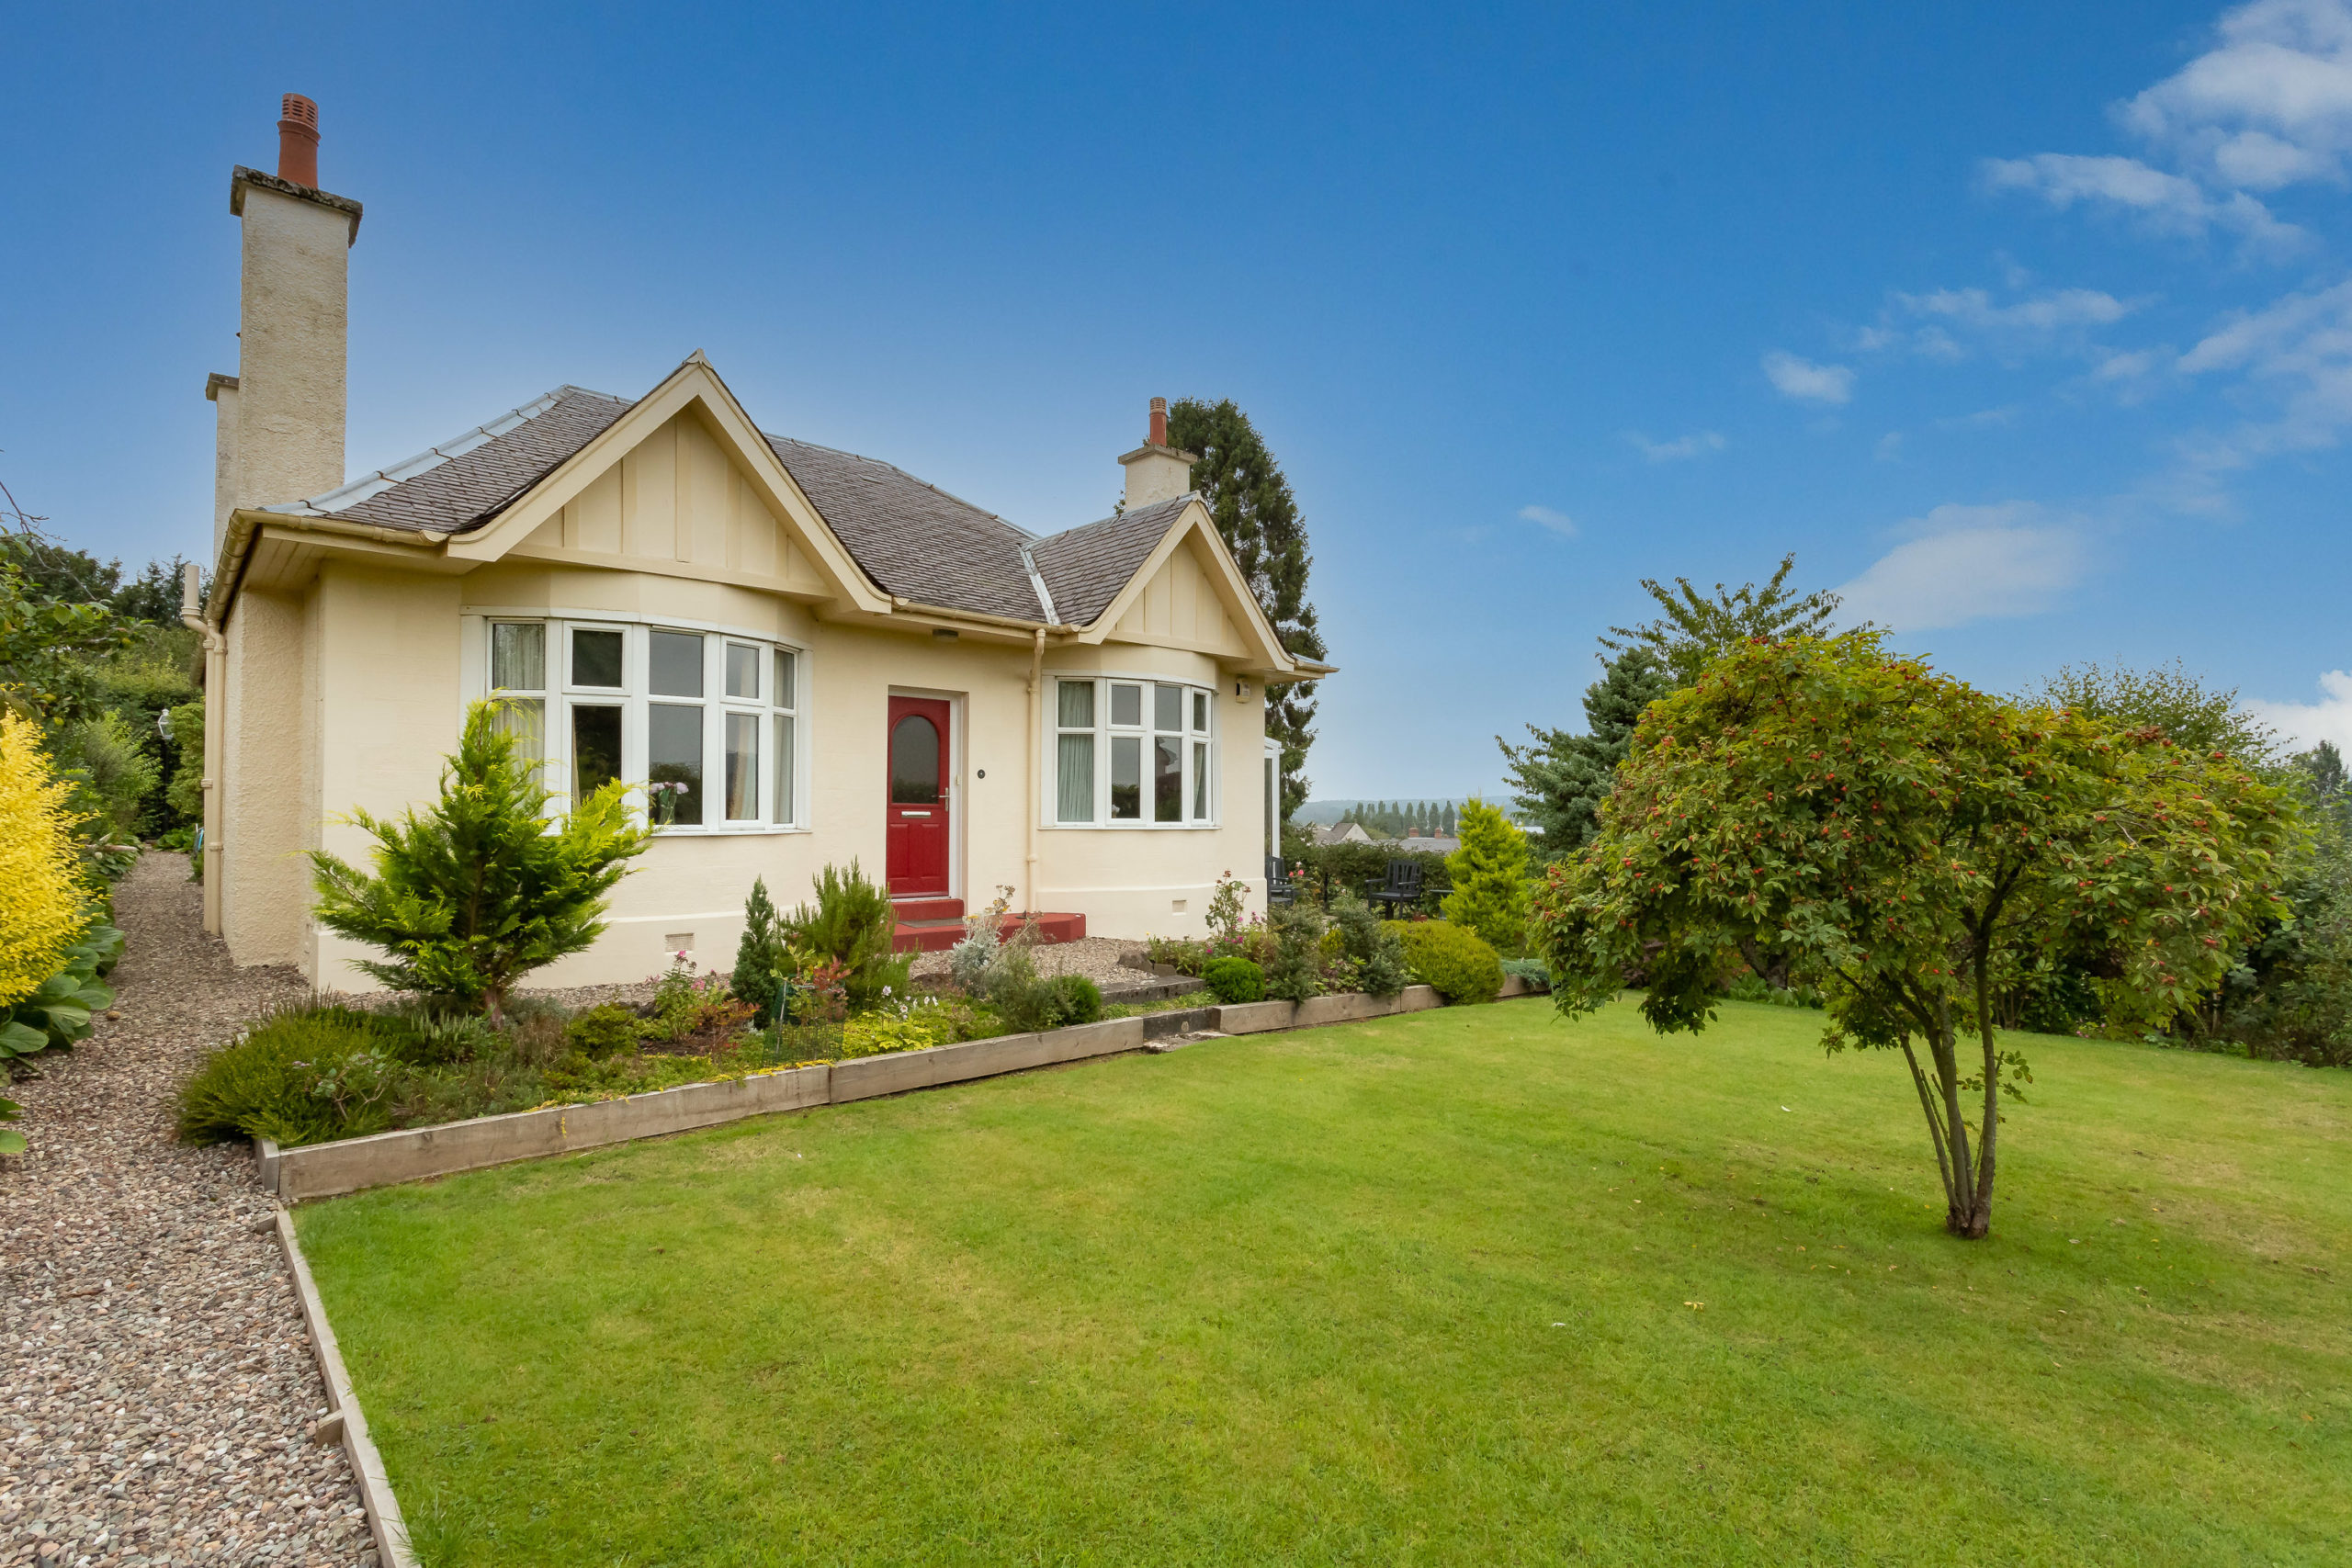 Woodriffe, Graybank Road, Perth, PH2 0LW – 3 Bed Detached Bungalow